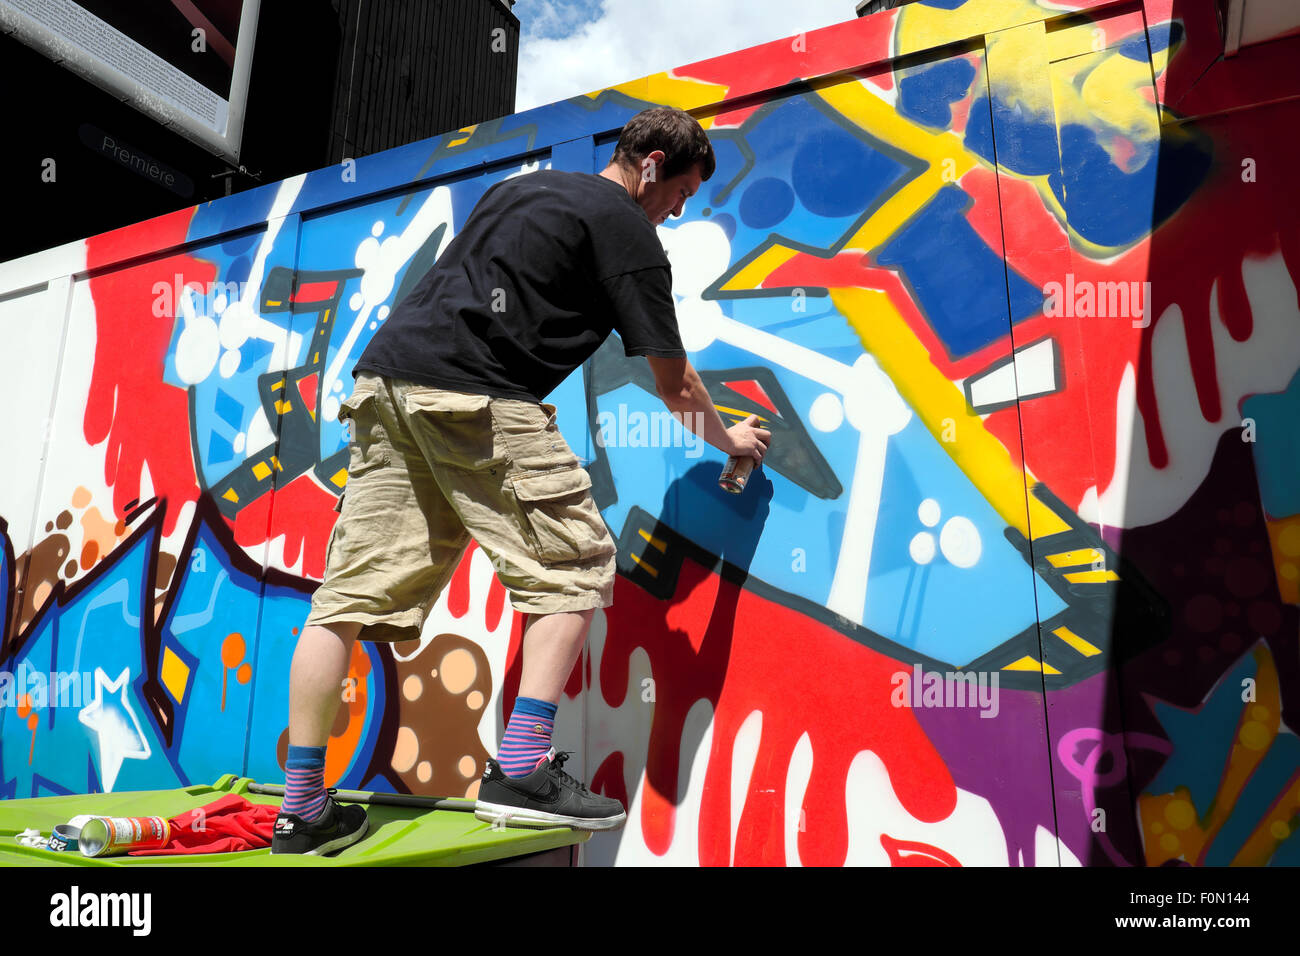 man spray painting graffiti on great eastern street hoarding in stock. Black Bedroom Furniture Sets. Home Design Ideas